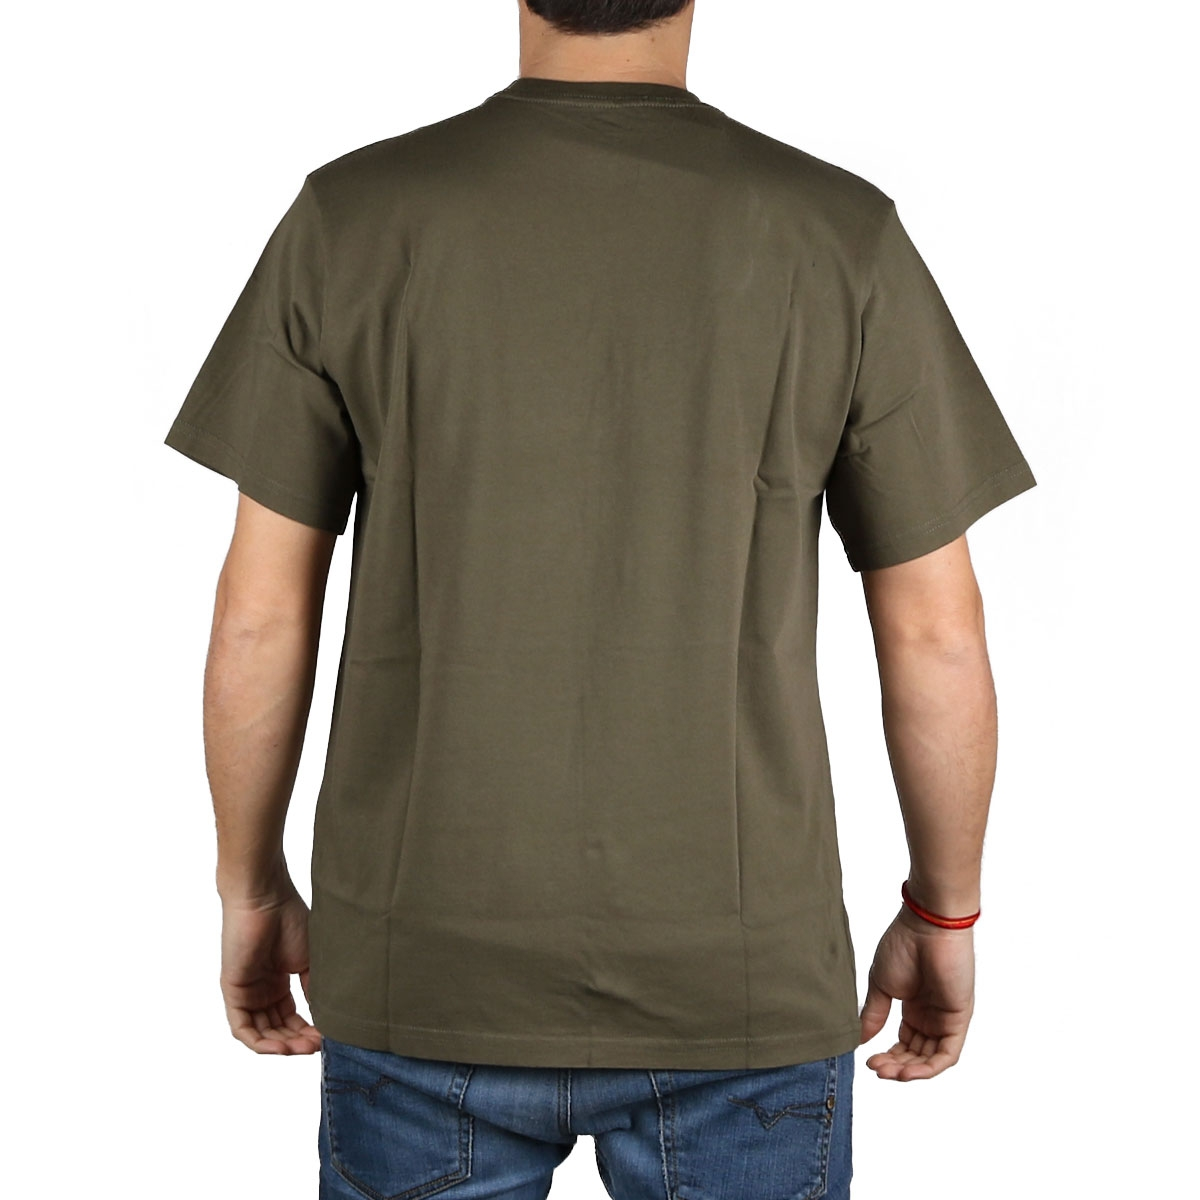 Levis Camiseta Relaxed Graphic Tee Verde Caqui Hombre